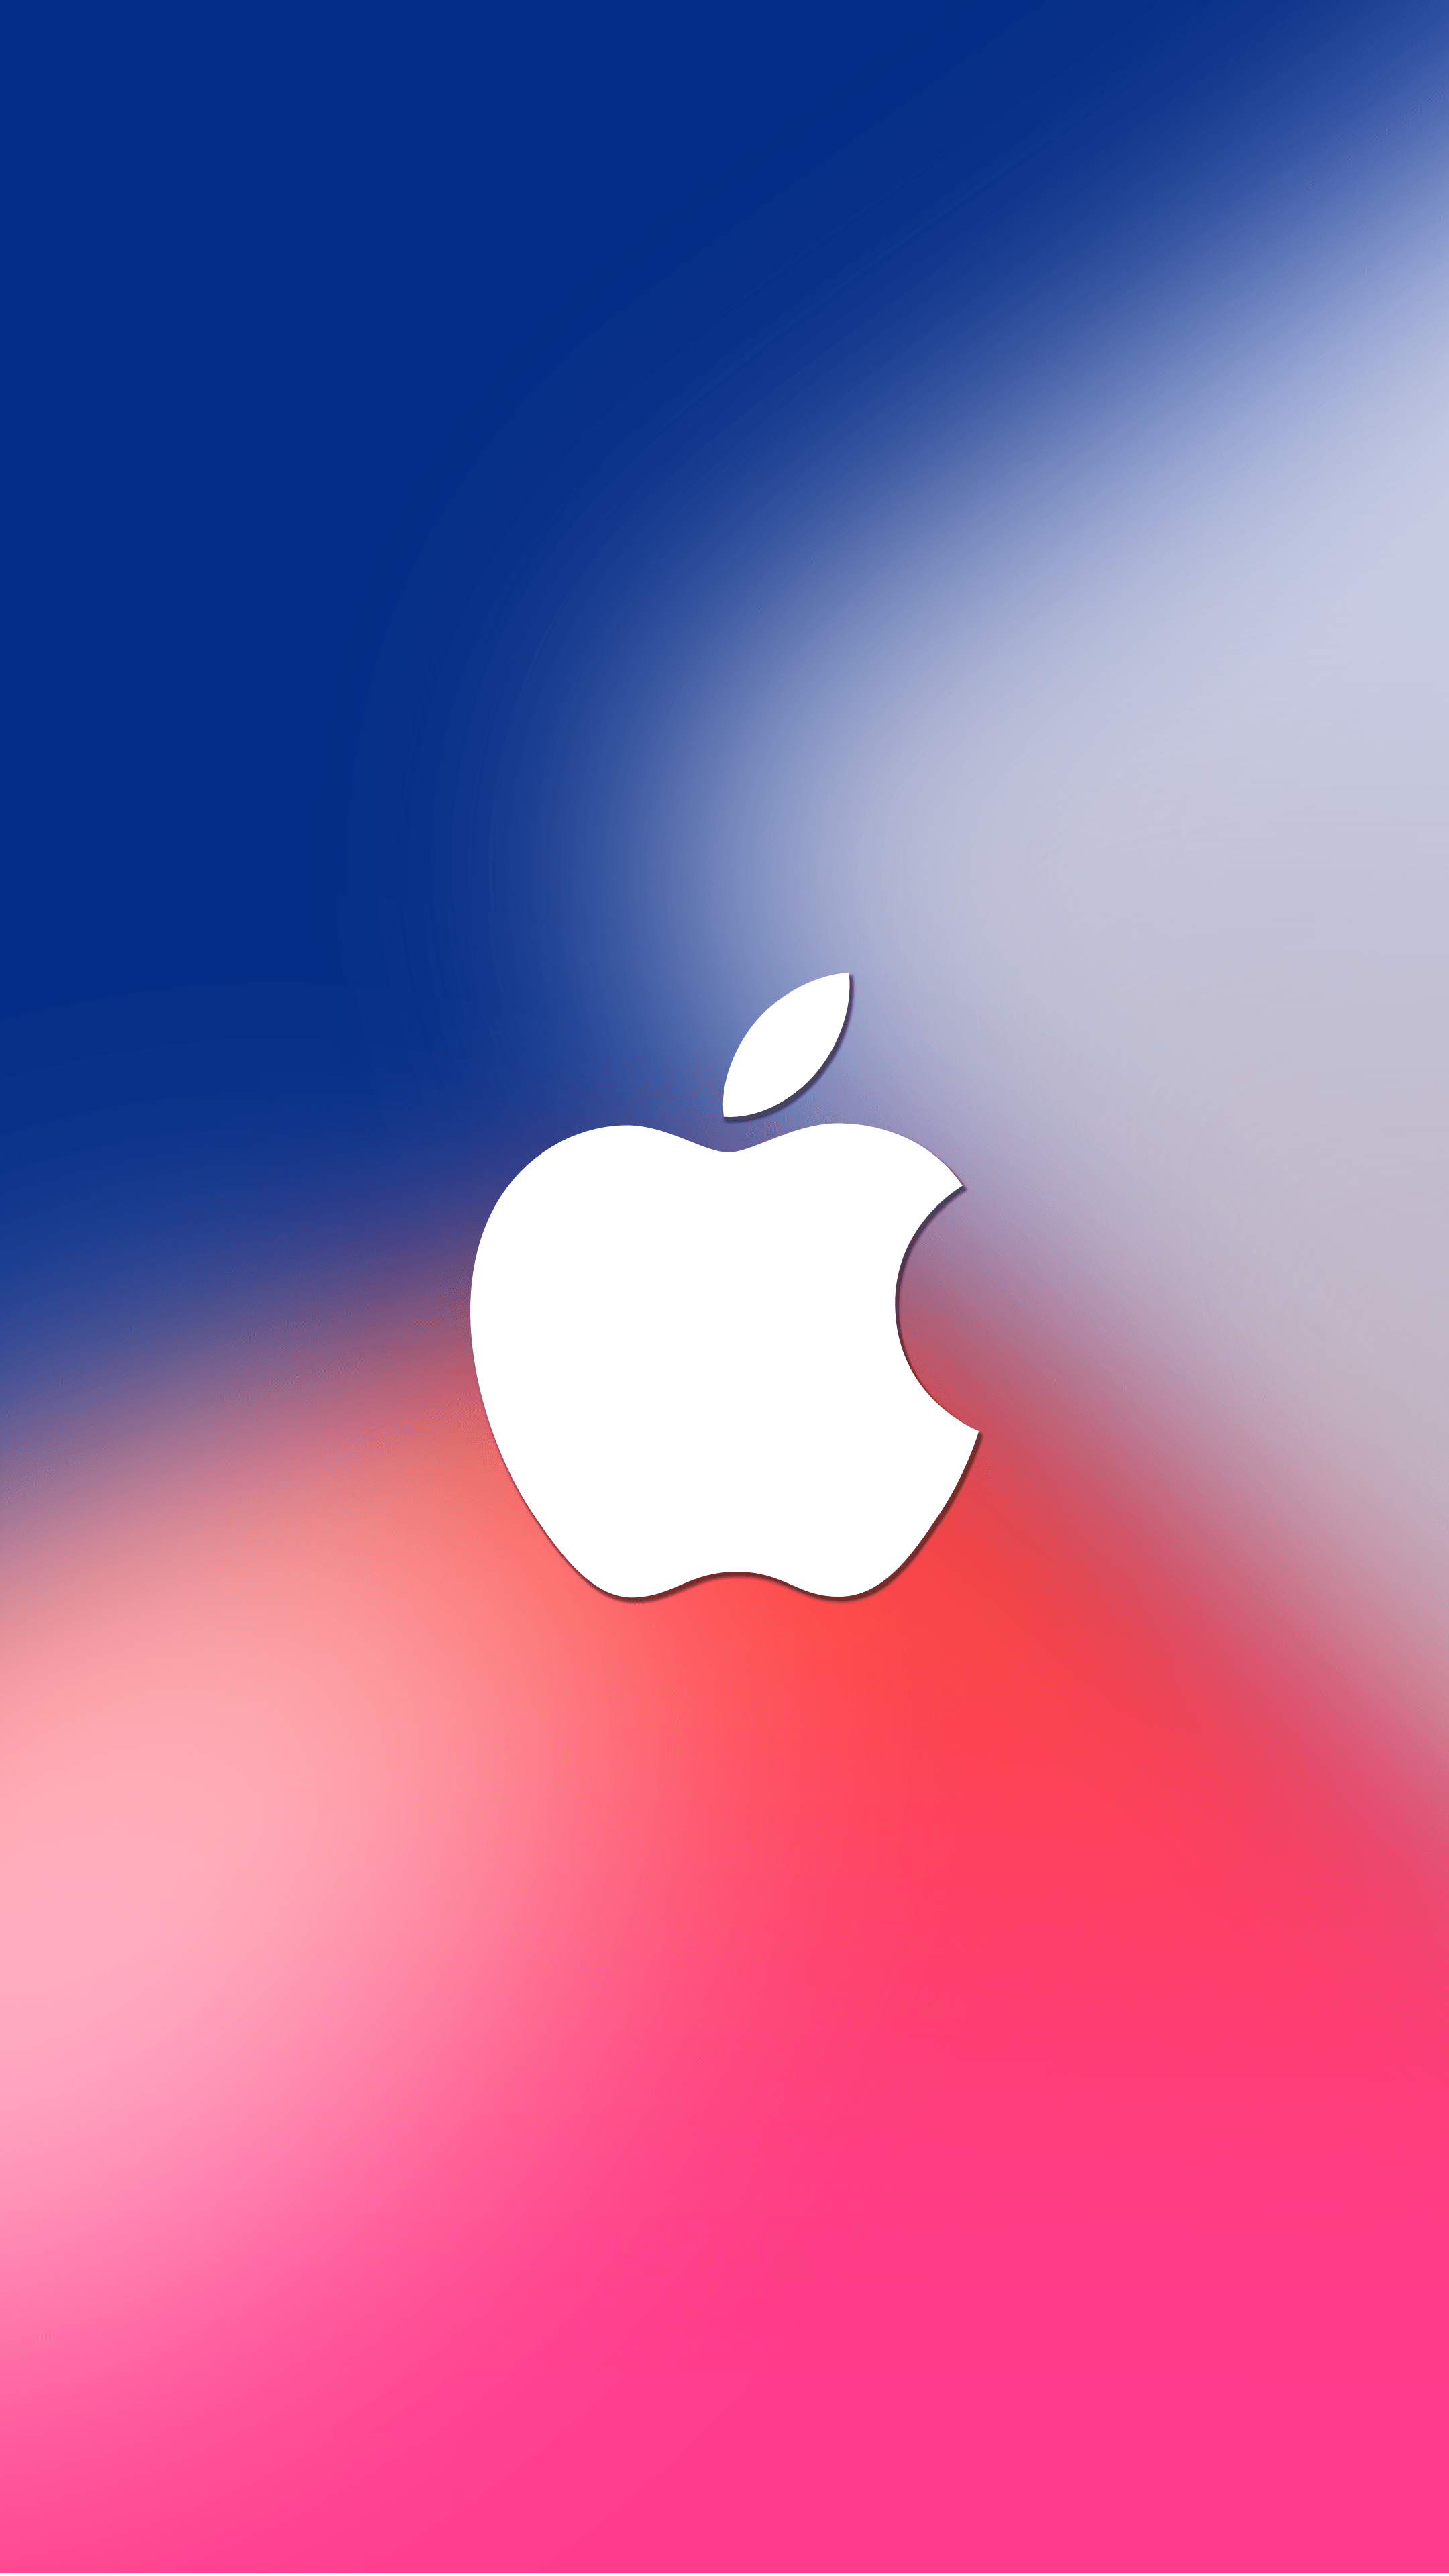 Iphone Logo Wallpapers Top Free Iphone Logo Backgrounds